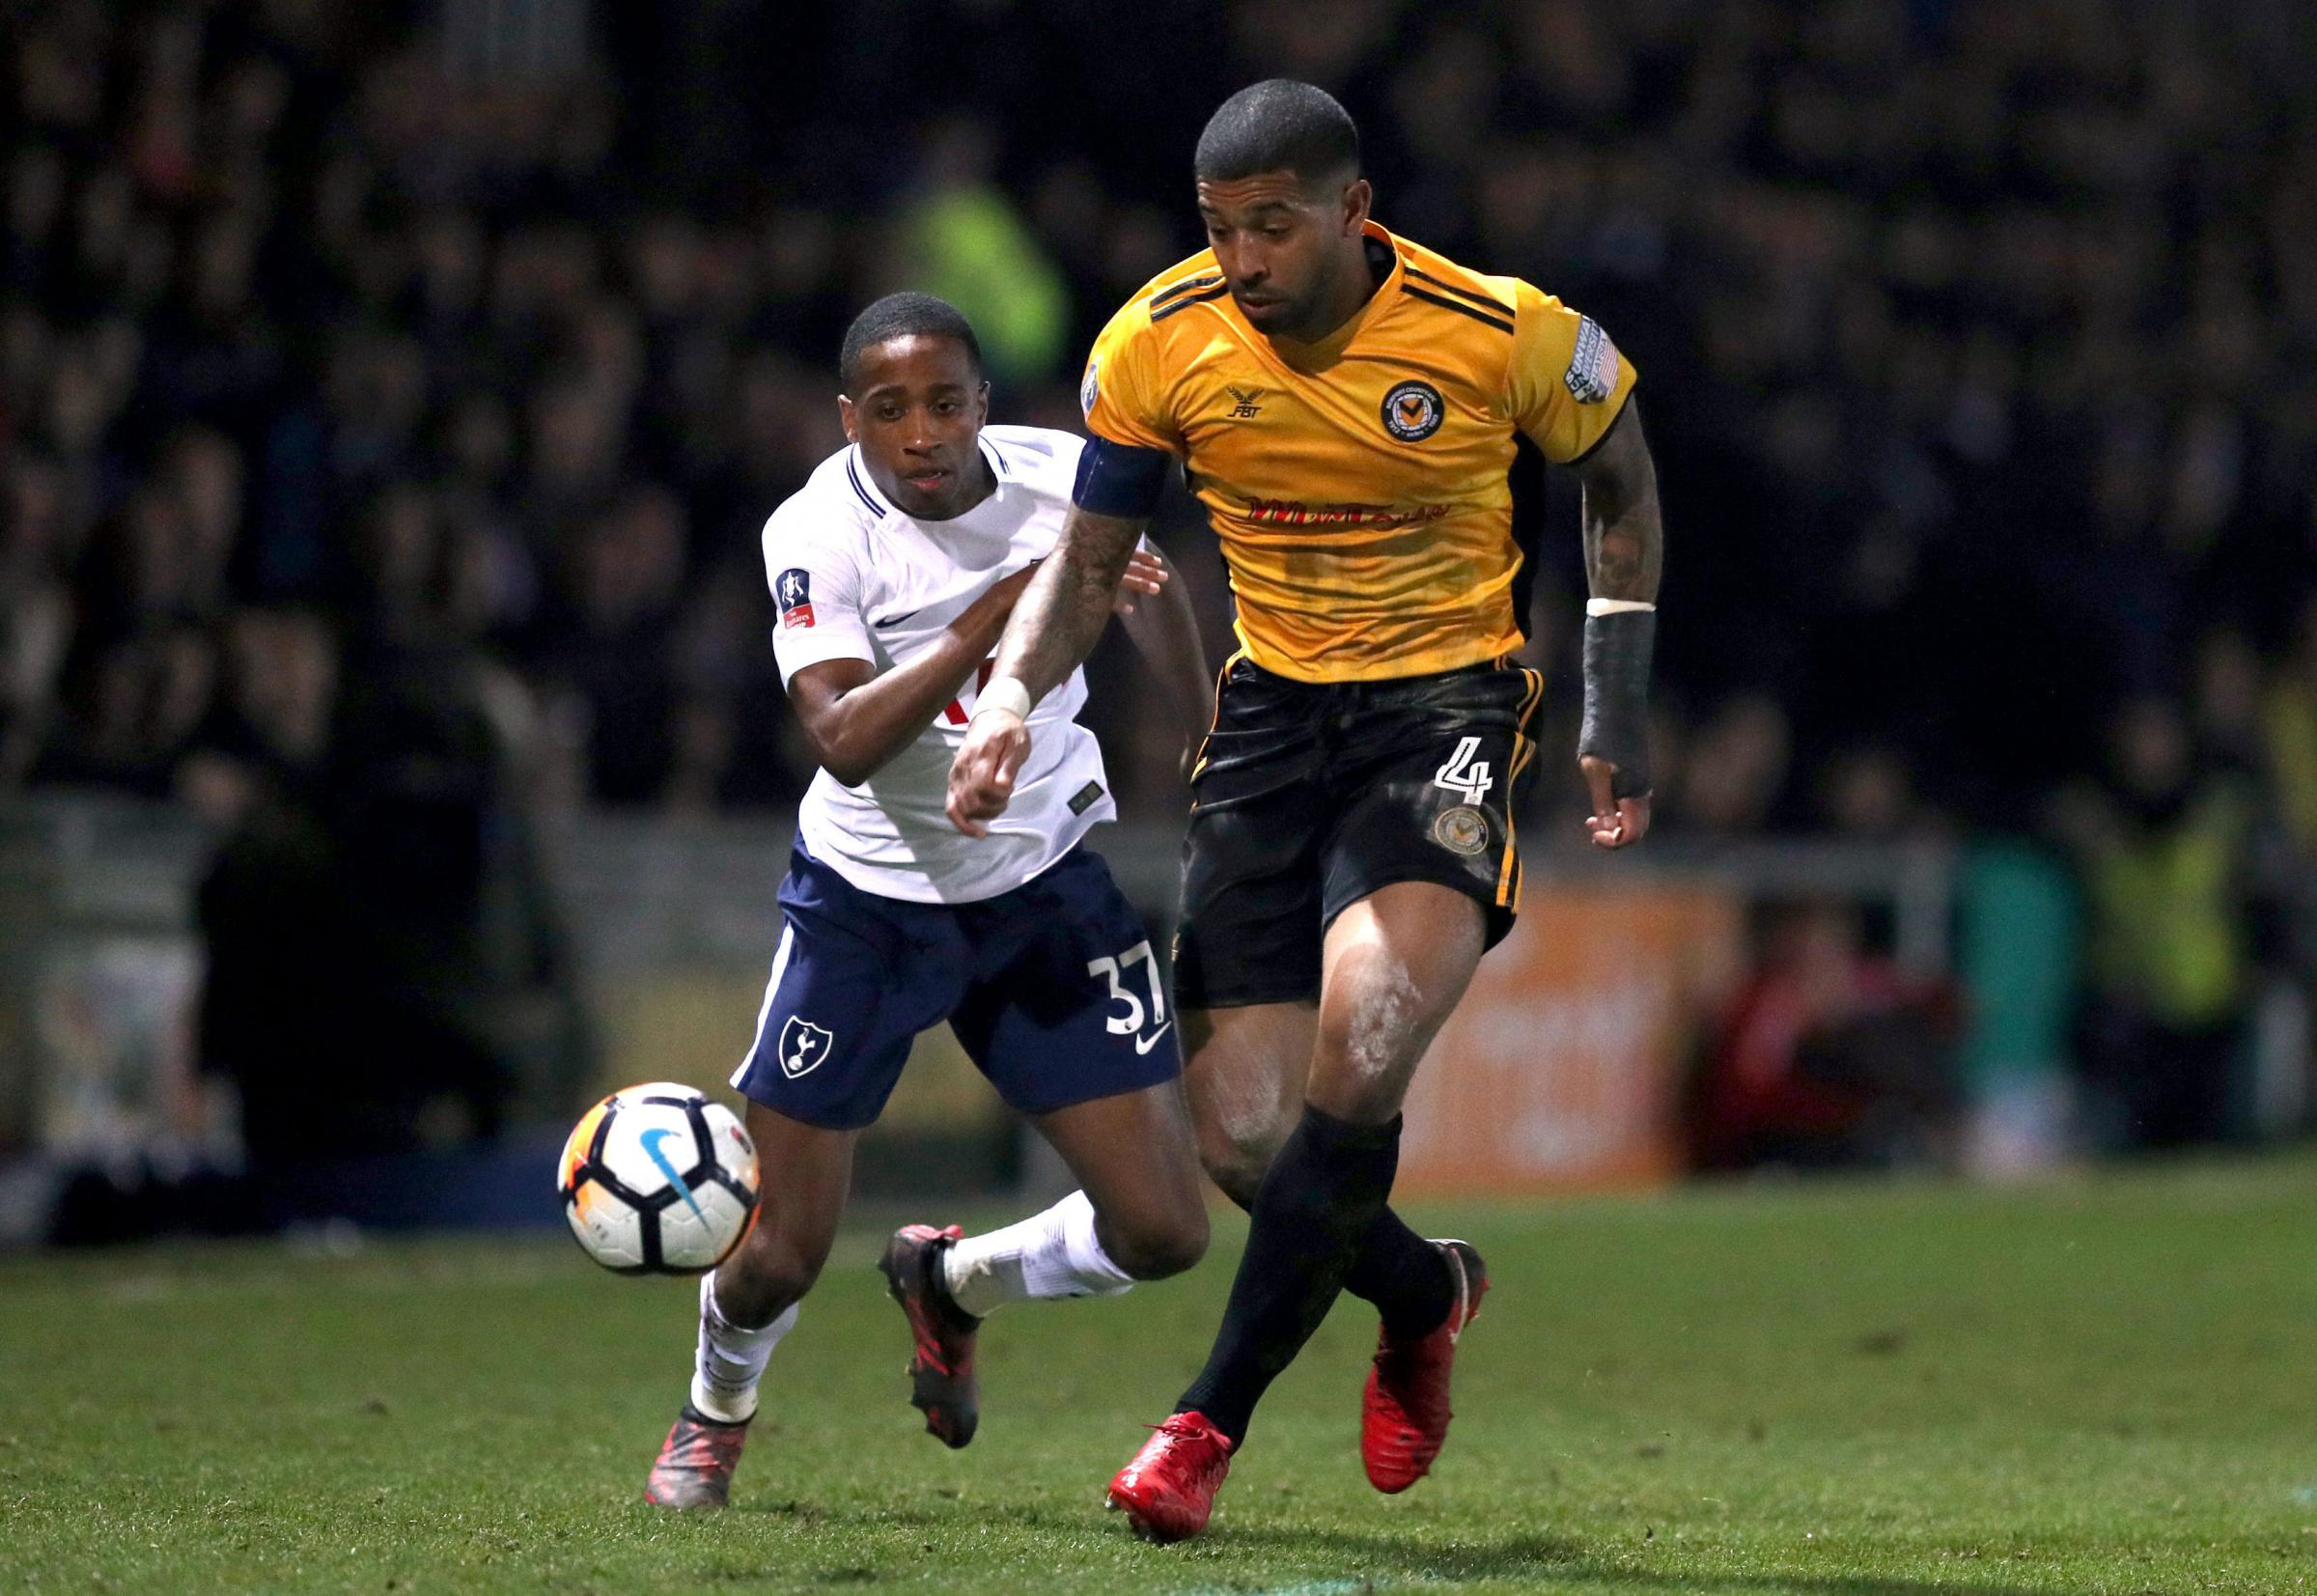 INFLUENTIAL: Newport County captain Joss Labadie in action against Tottenham Hotspur in January's FA Cup fourth-round clash at Rodney Parade